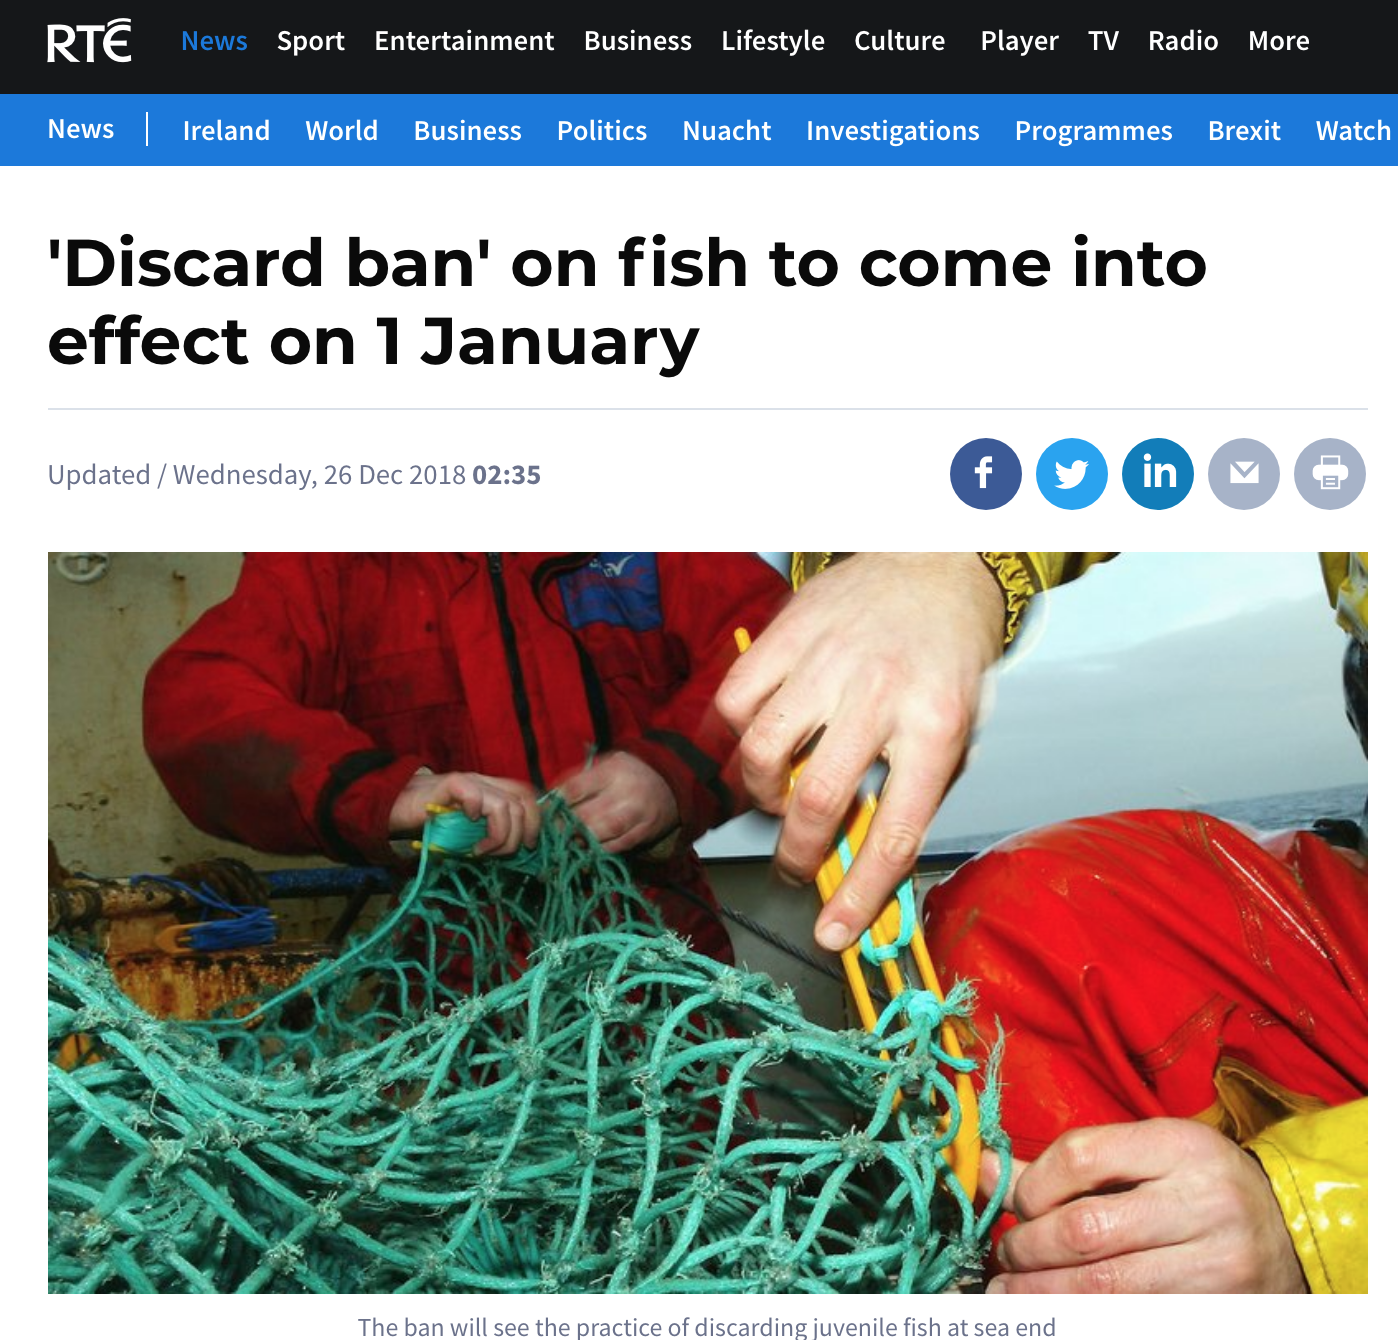 'Discard ban' on fish to come into effect on 1 January